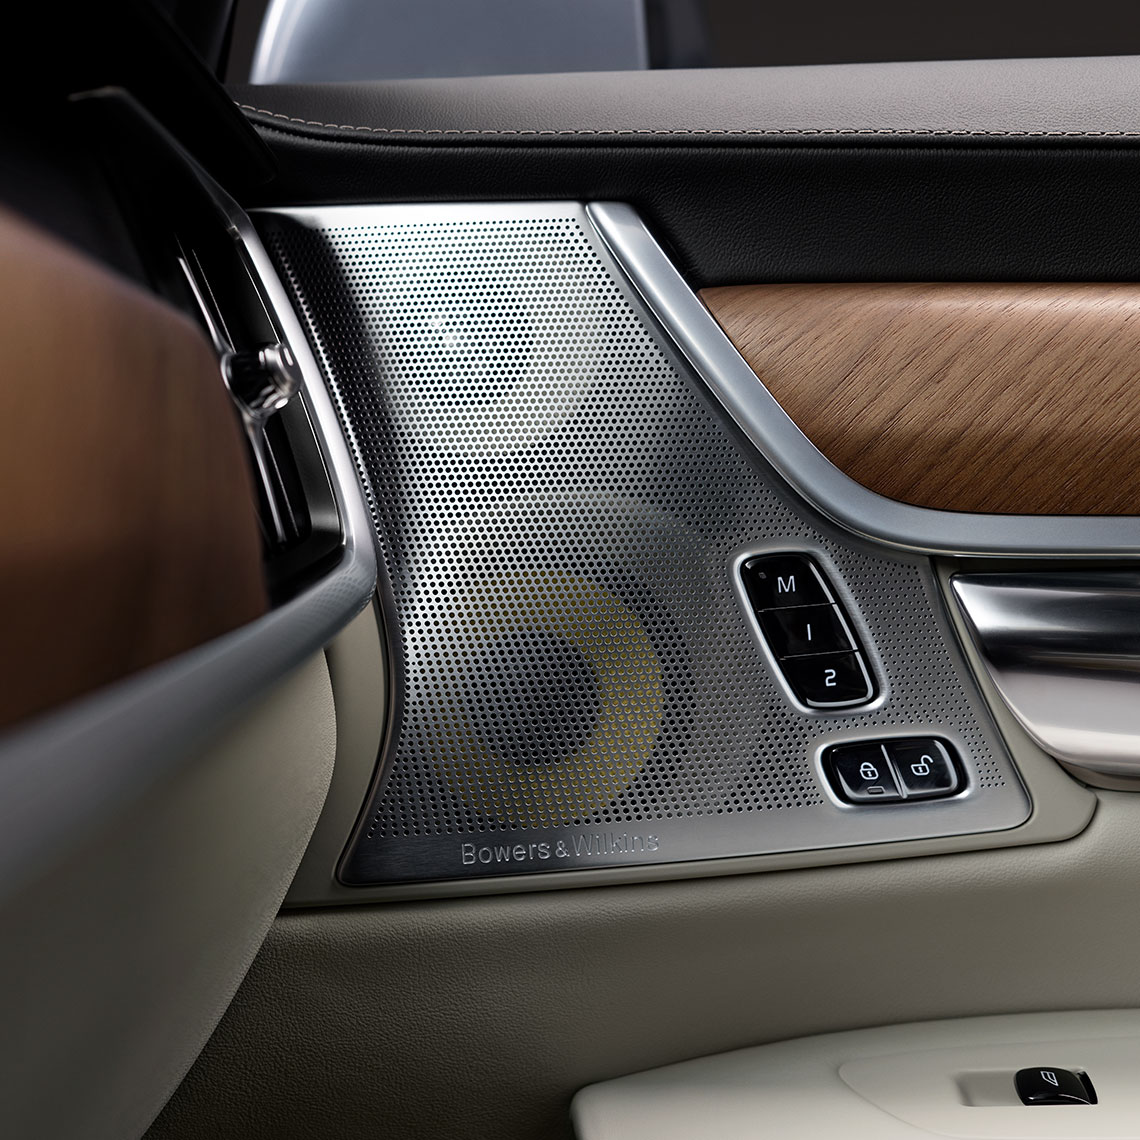 Volvo Soundsysteme - Der Volvo S90 INSCRIPTION - Detailaufnahme des Bowers & Wilkens Soundsystem